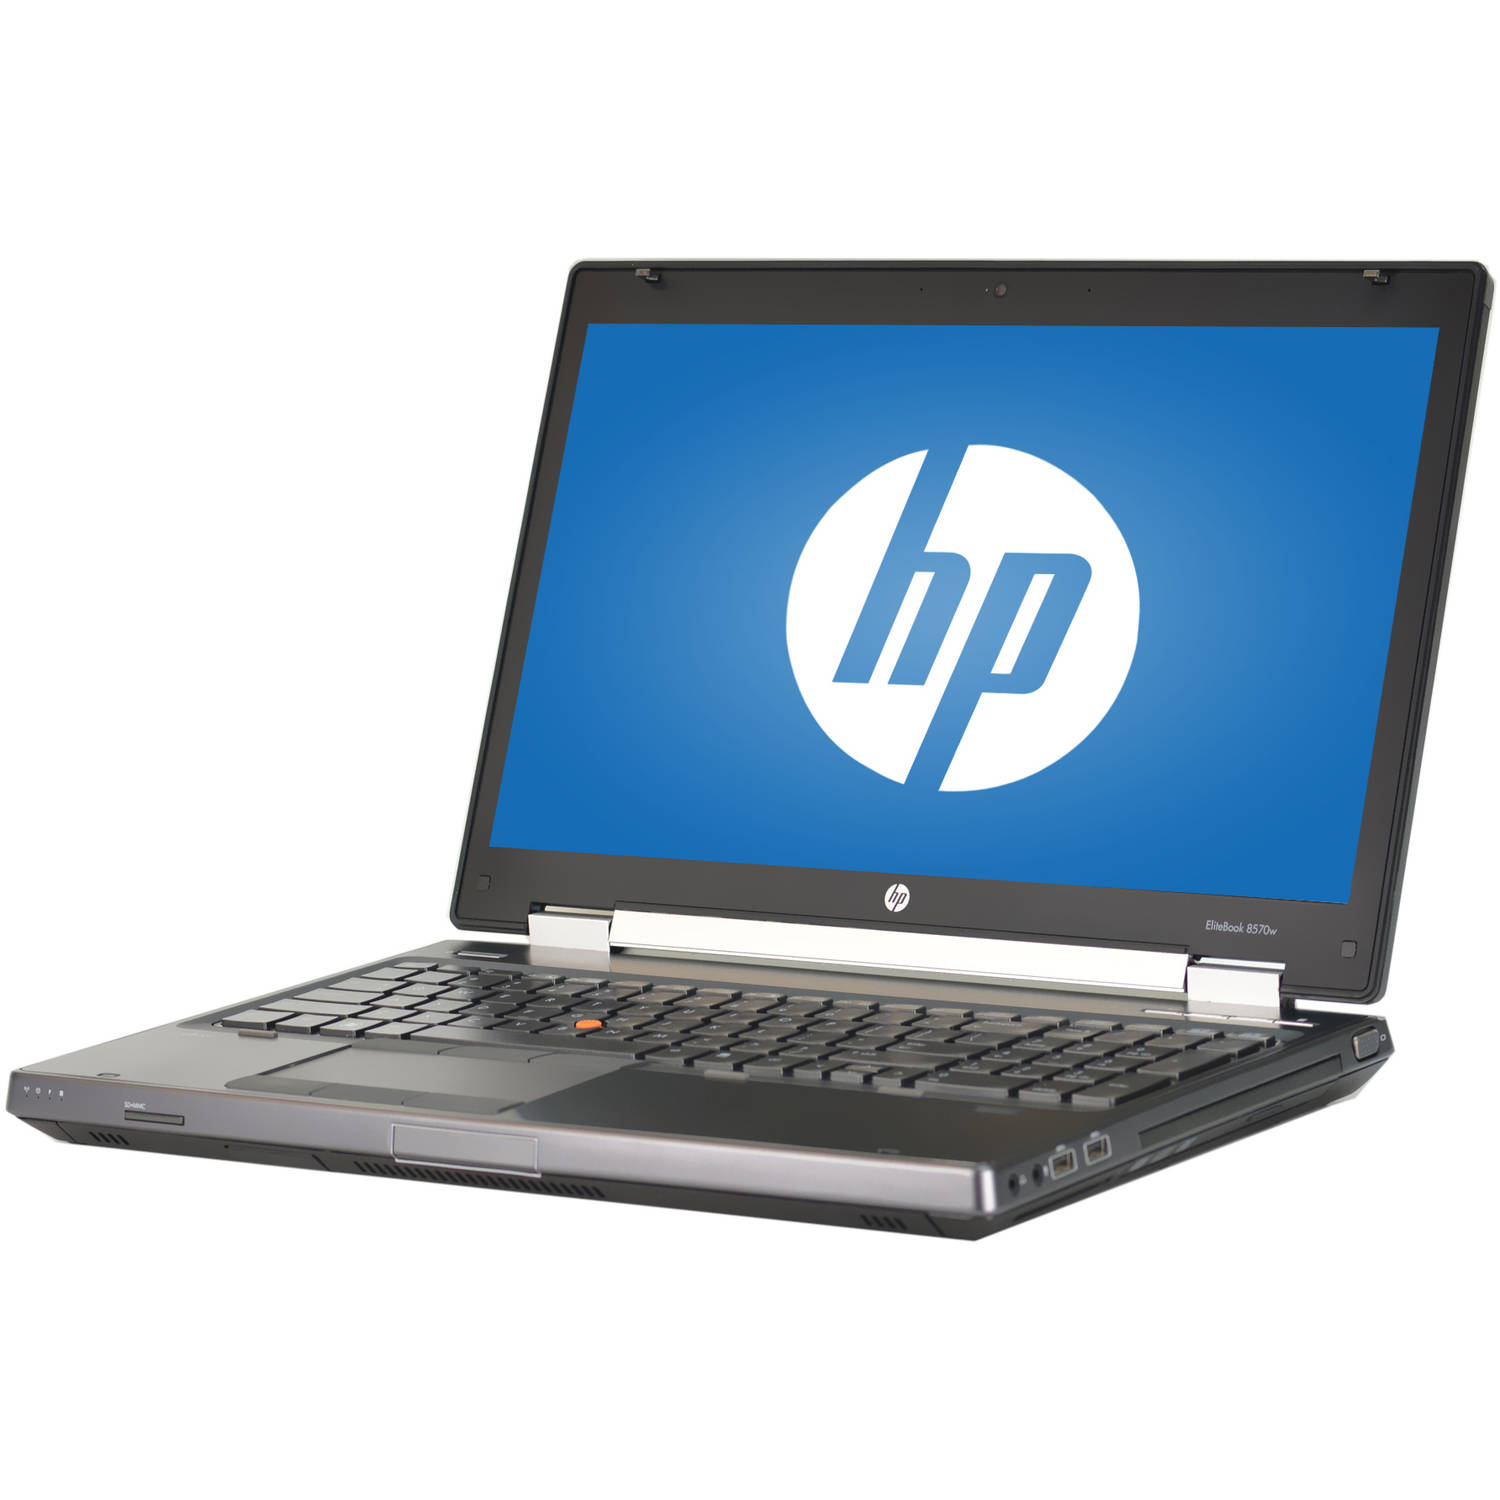 "Refurbished HP 15.6"" EliteBook 8570W Laptop PC with Intel Core i7-3720QM Processor, 16GB Memory, 750GB Hard Drive and Windows 7 Professional"